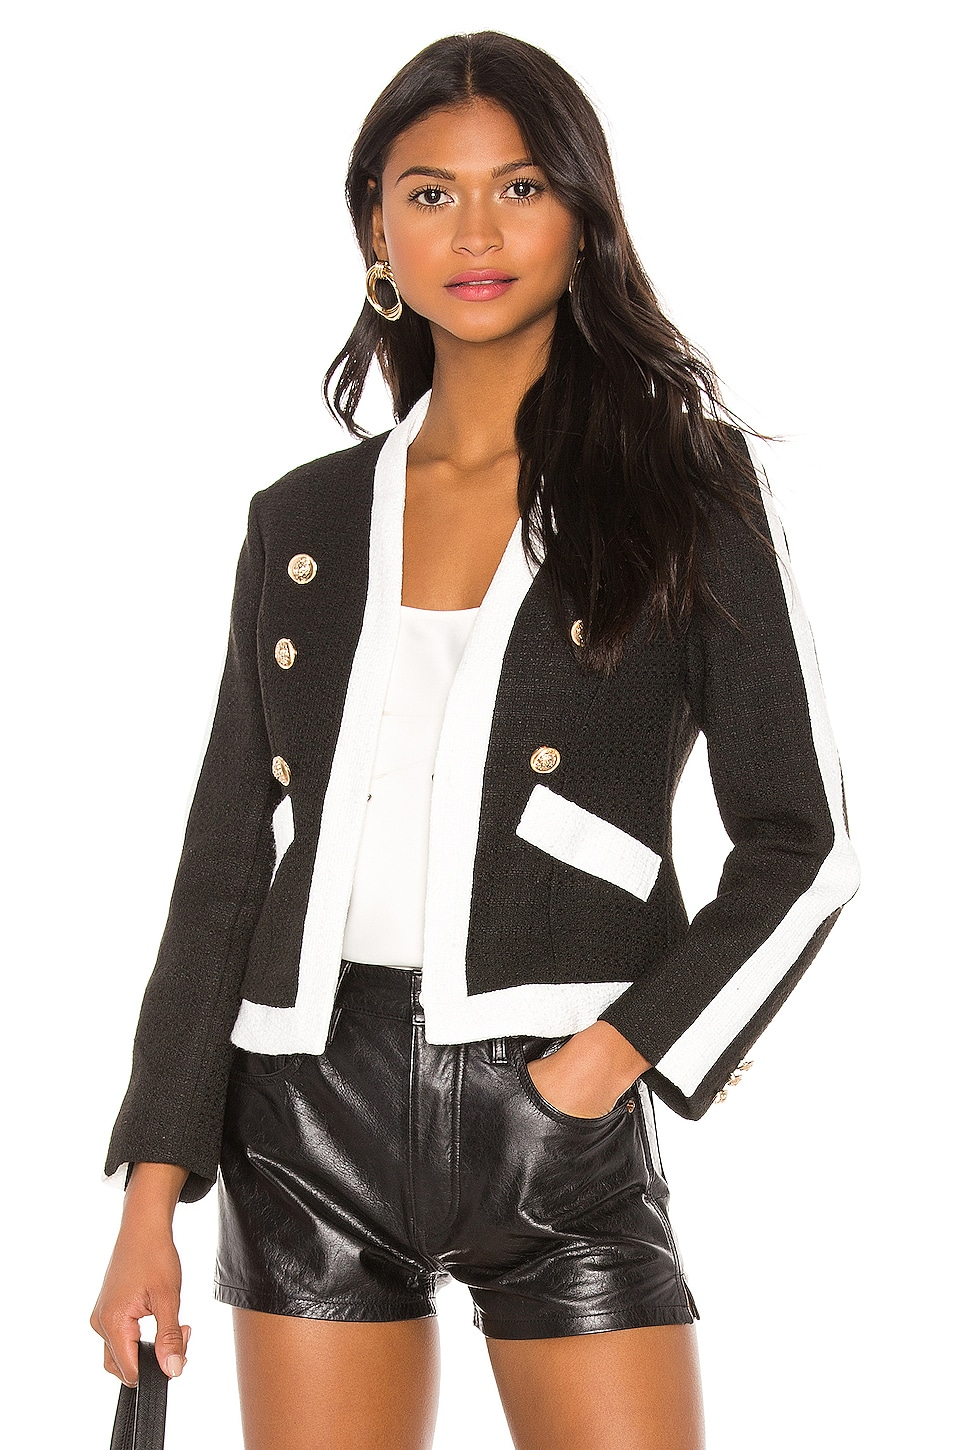 Central Park West L'Horizon Two Tone Jacket in Black & White